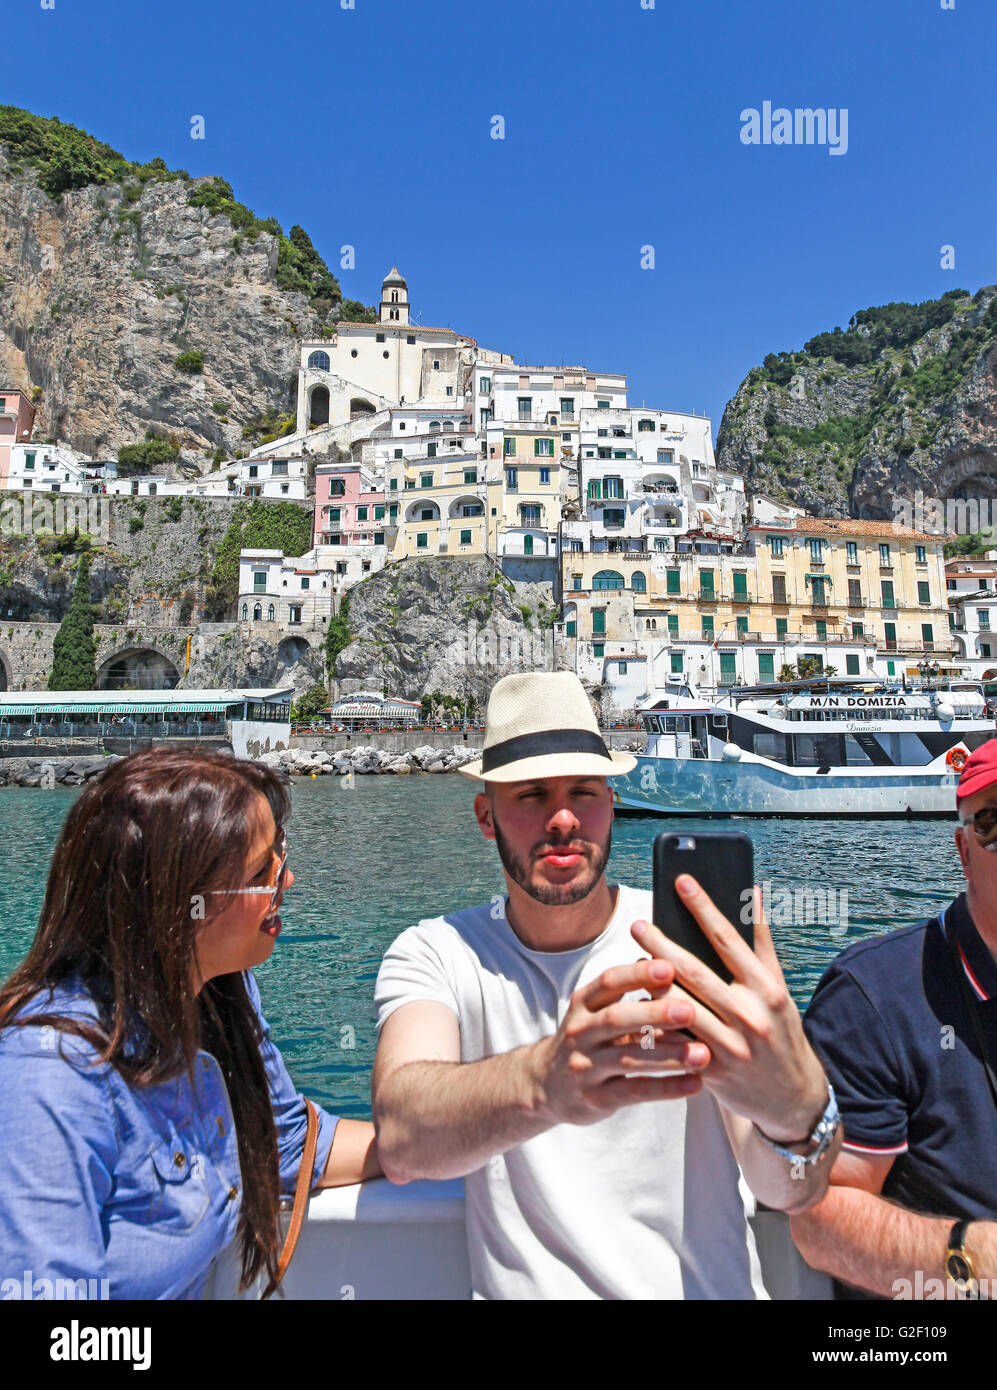 An man with an attractive young woman taking a selfie on a boat trip around the Amalfi Coast Italy Europe - Stock Image